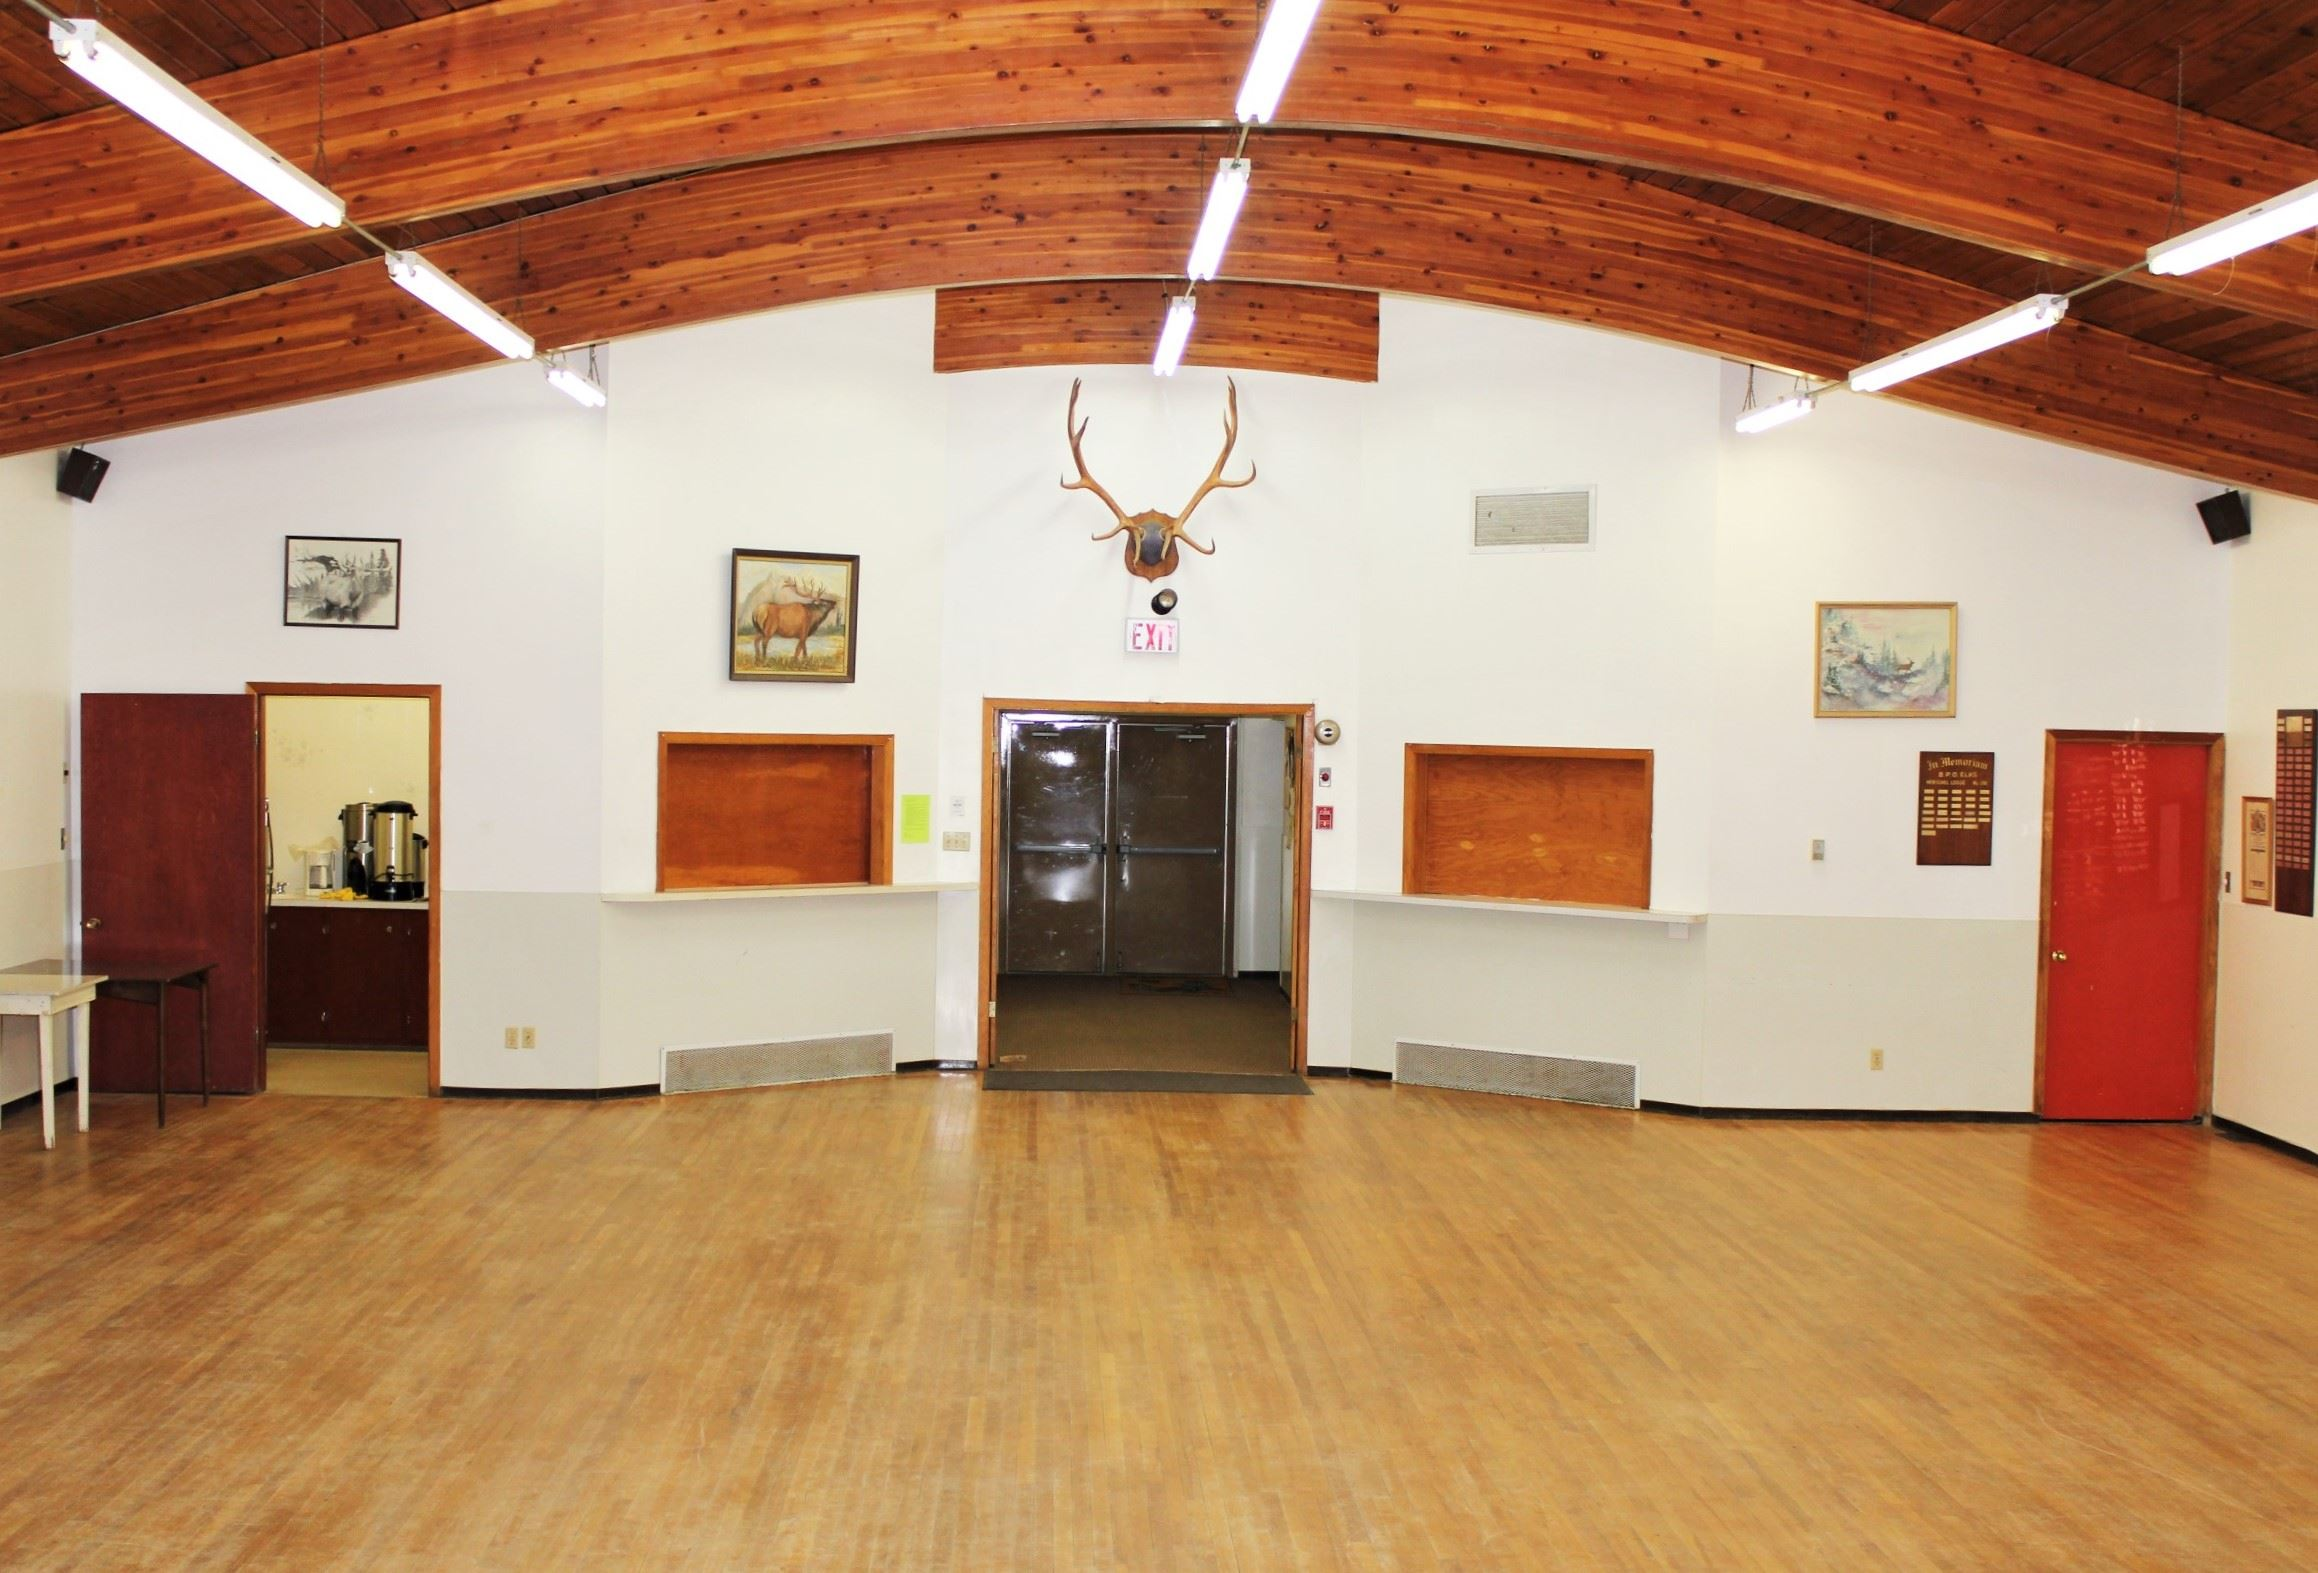 Image of the interior of the Elk's Hall